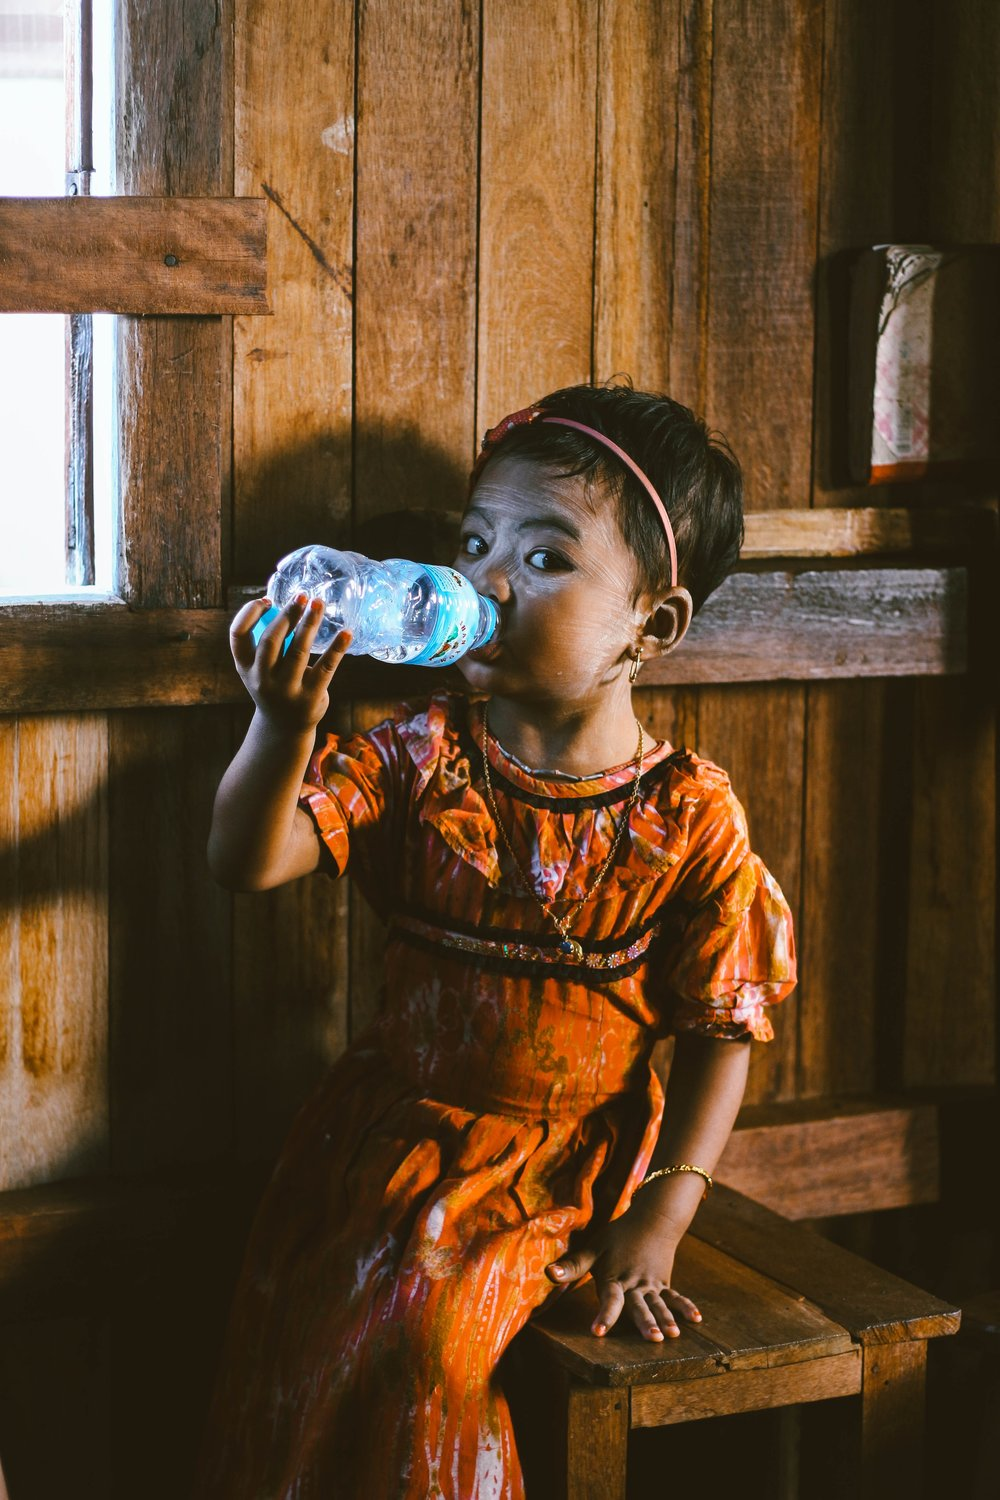 Some 1,400 children die each day from water-related diseases. -